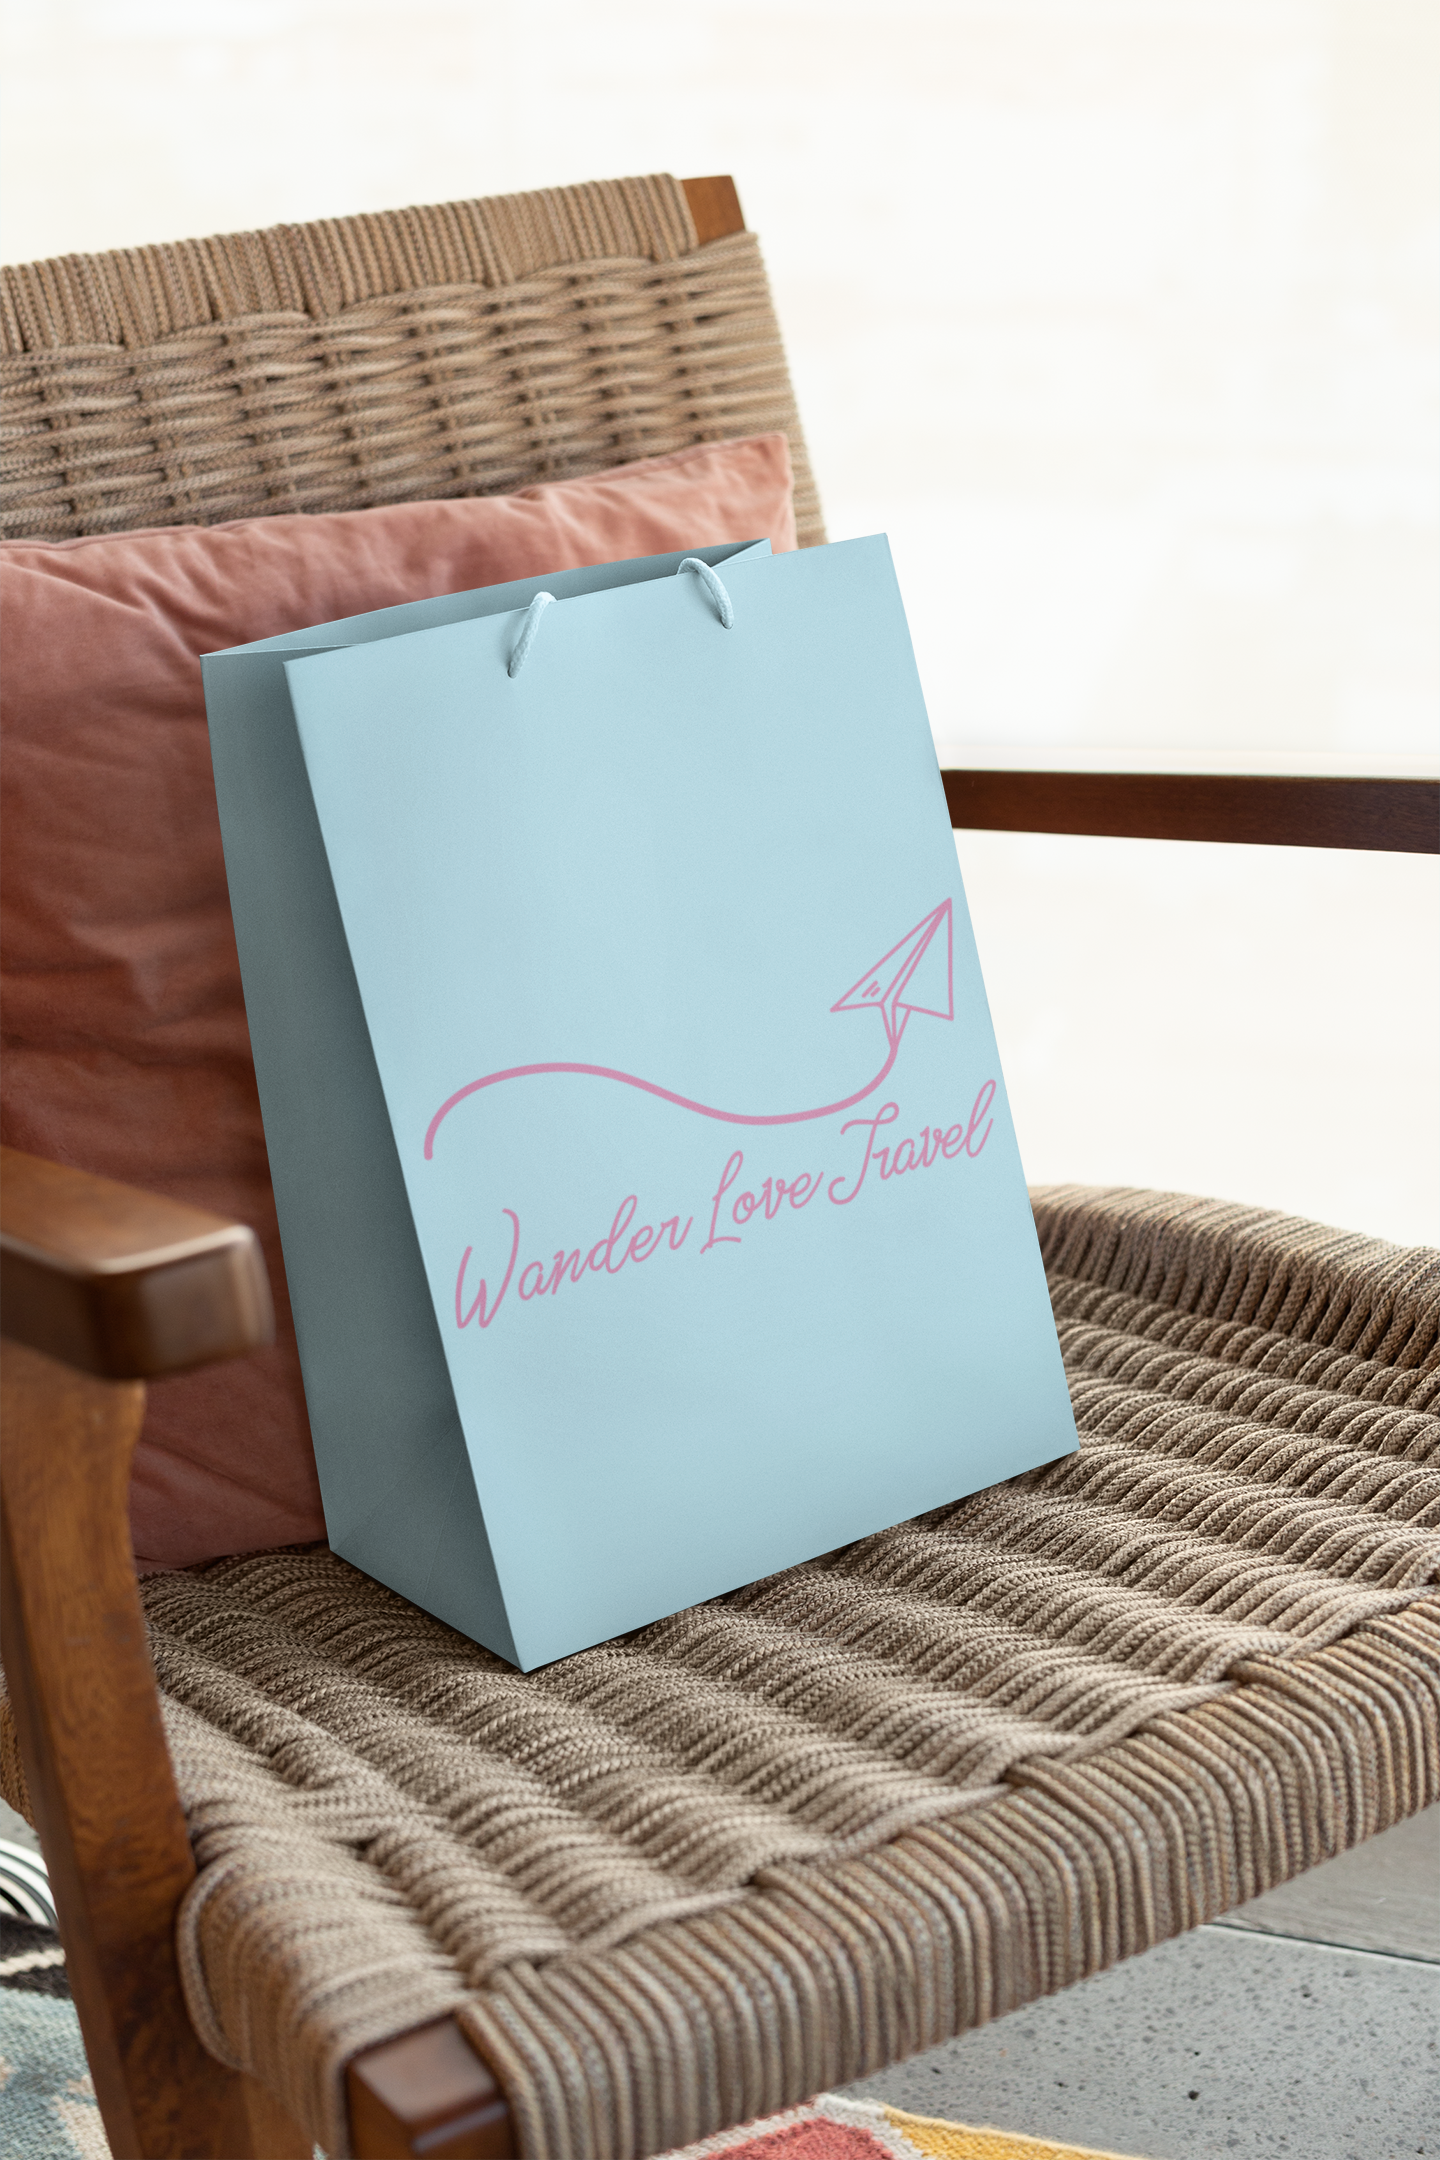 Branding and gift bag design by Thomas Mee Design Works